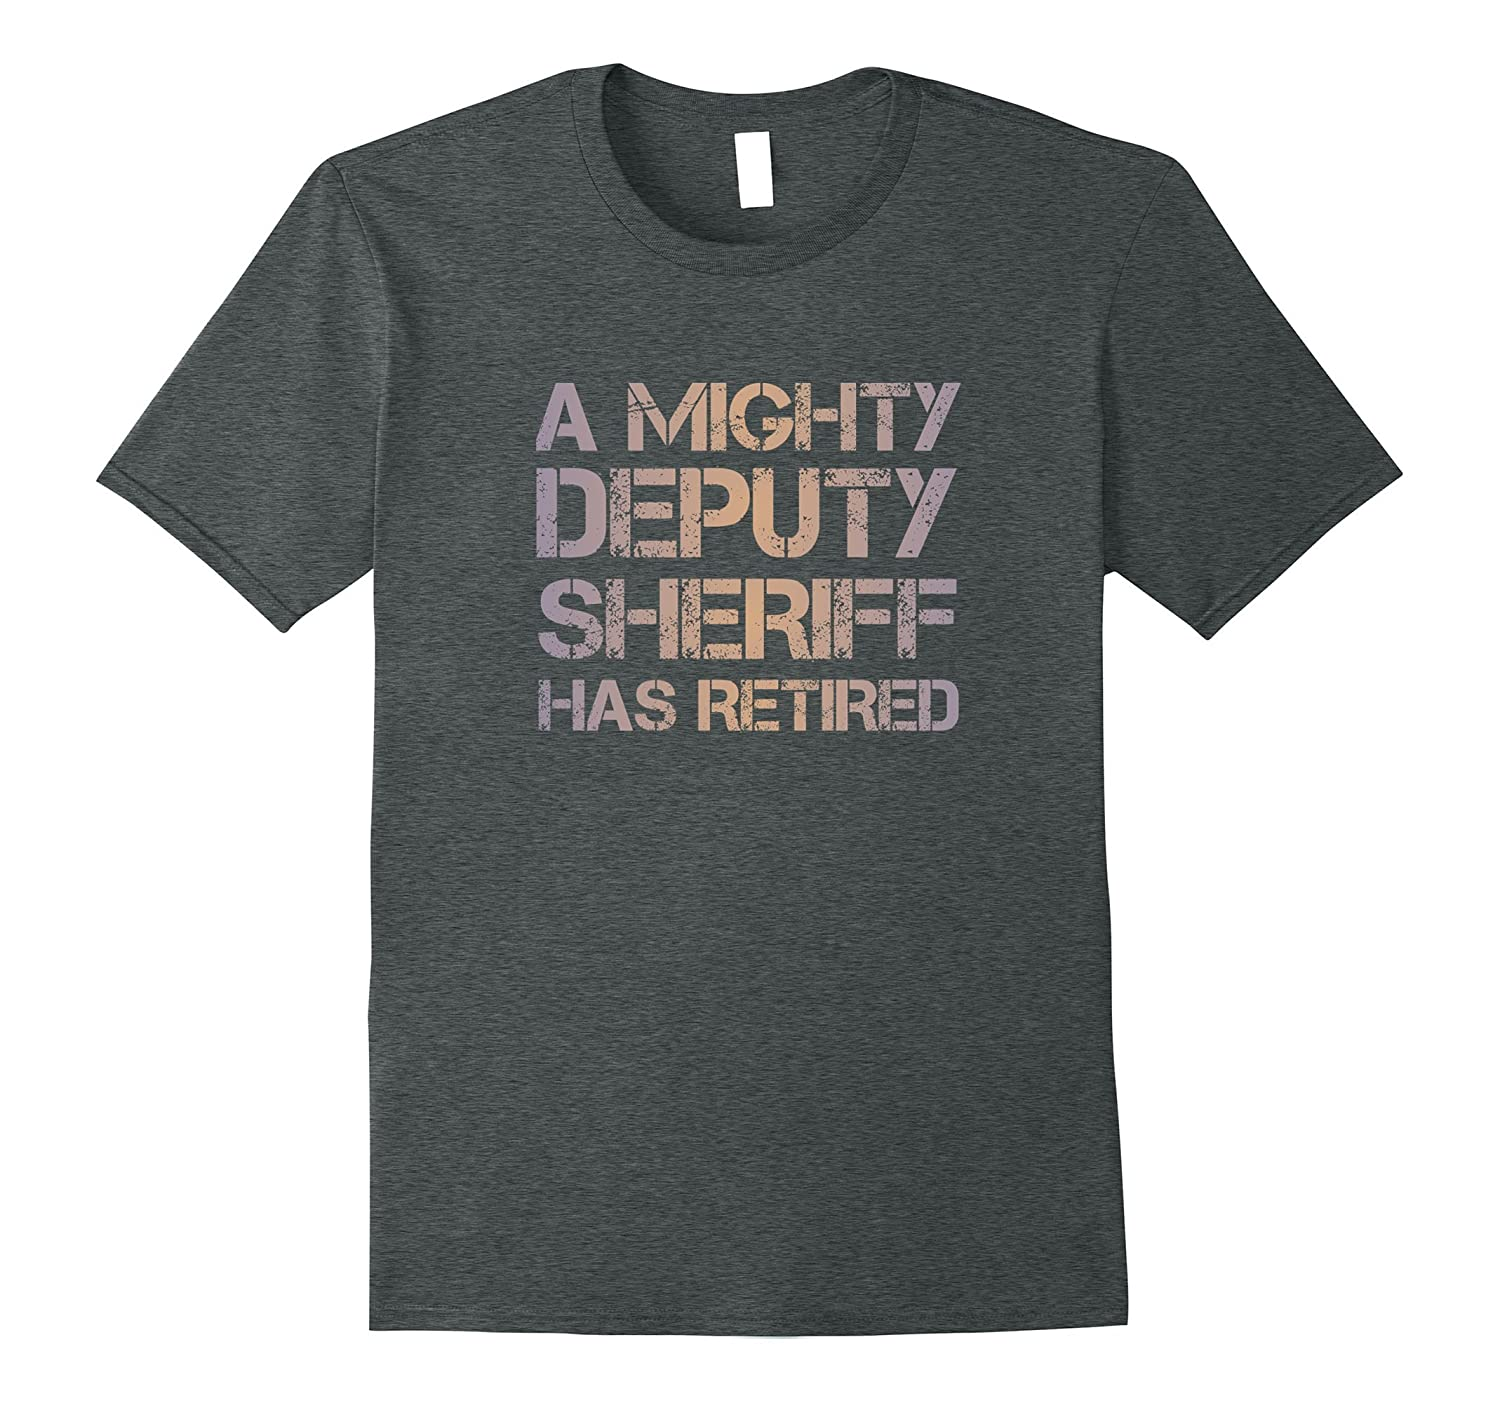 A Mighty Deputy Sheriff Has Retired Retirement Gift T-shirt